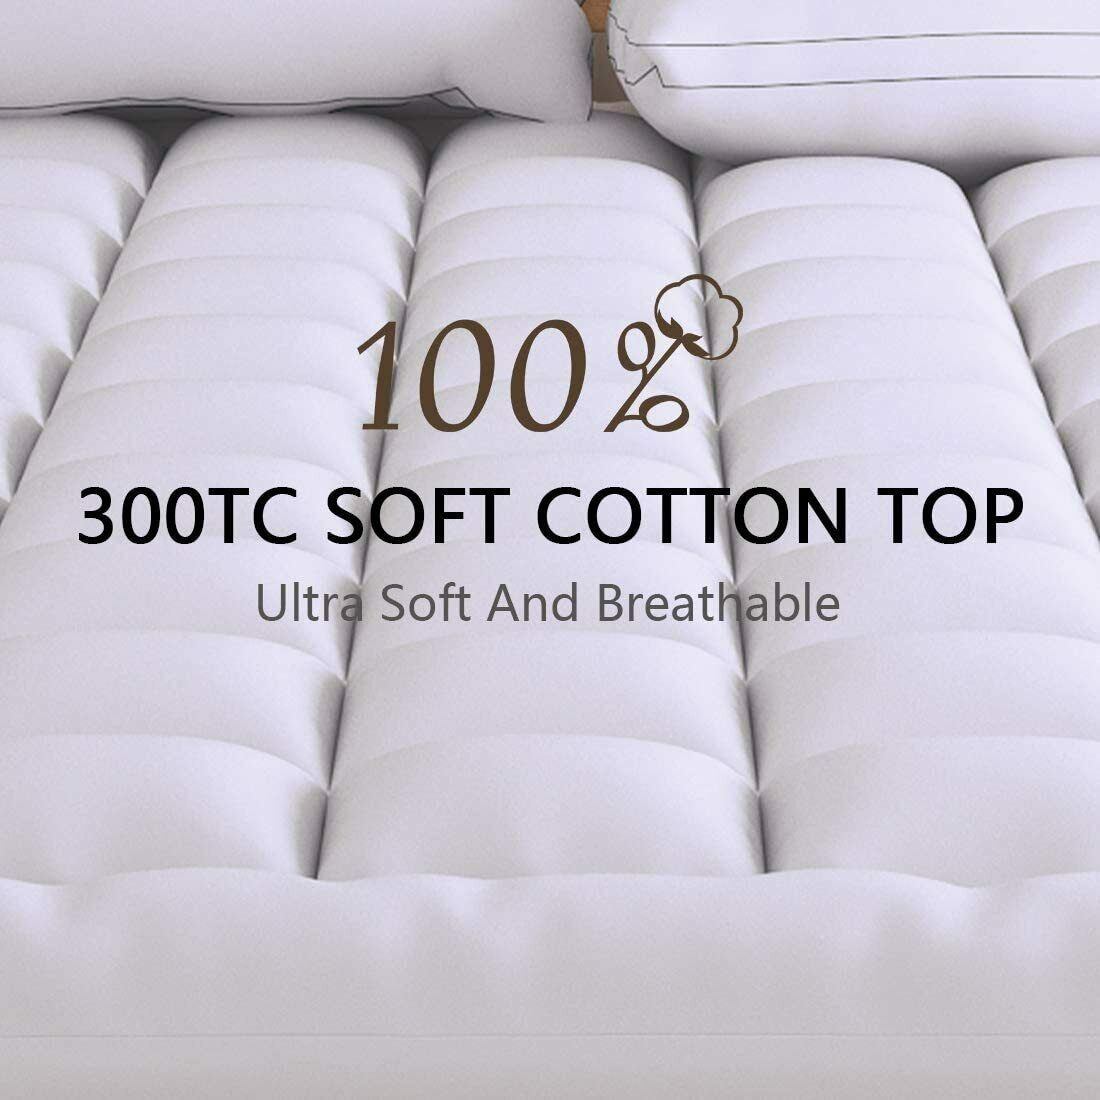 THLAND Queen Mattress Topper Extra Thick Pillow Top Cooling Mattress Pad Cover Cotton with Snow Down Alternative Fill